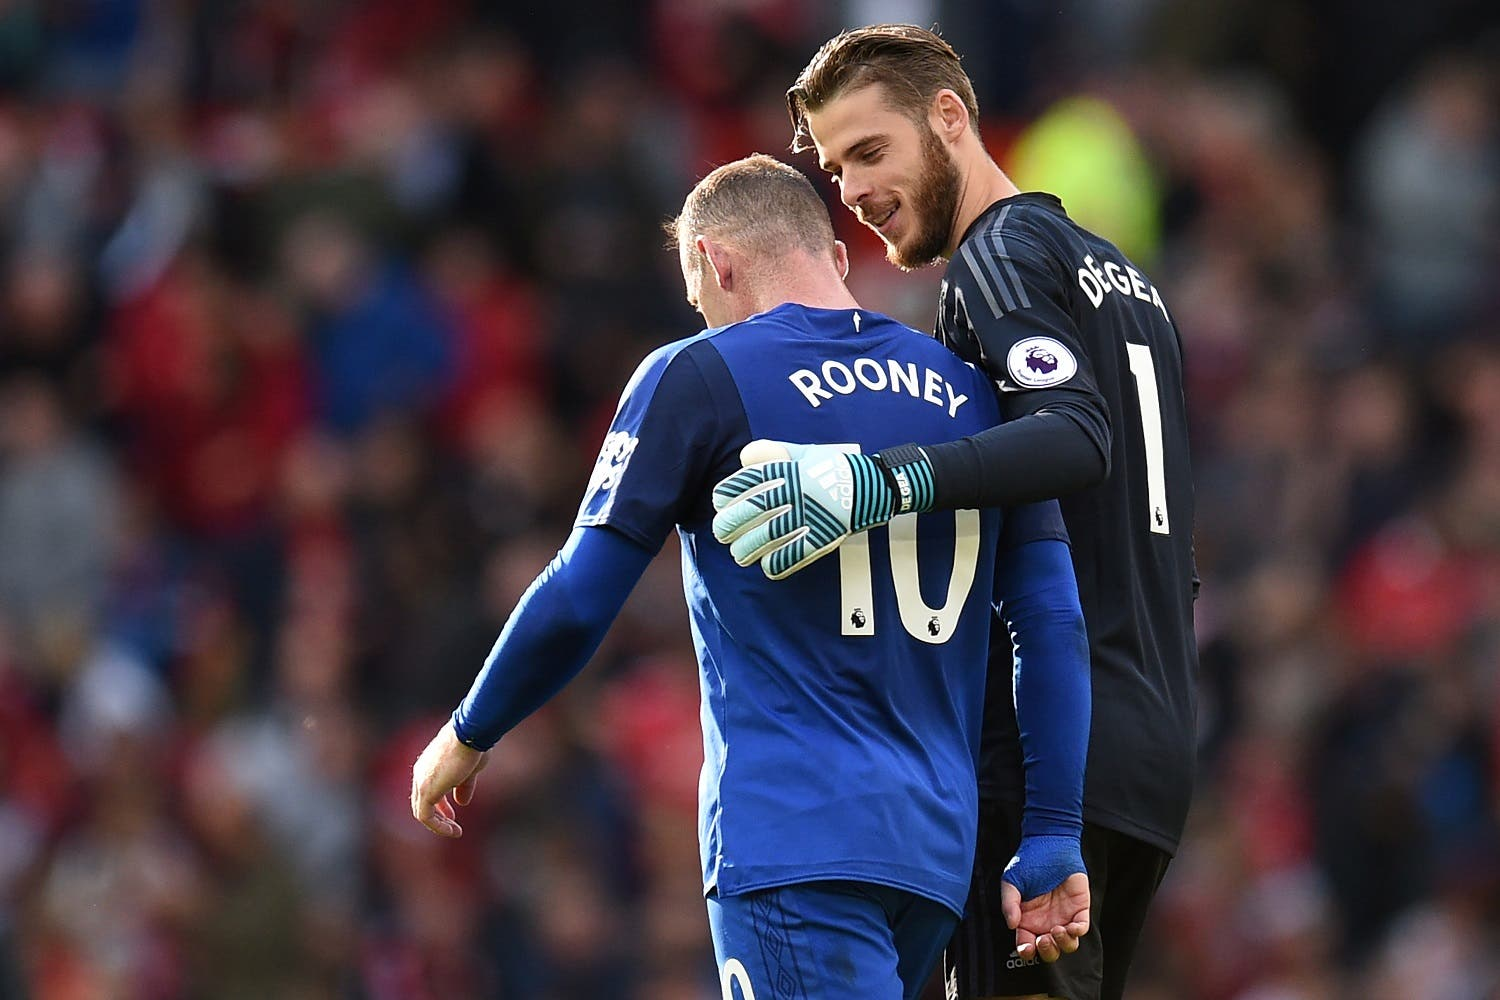 Manchester United's Spanish goalkeeper David de Gea (R) chats with Everton's English striker Wayne Rooney as they walk off the pitch at half time during the English Premier League football match between Manchester United and Everton at Old Trafford in Manchester, north west England, on September 17, 2017. (AFP)